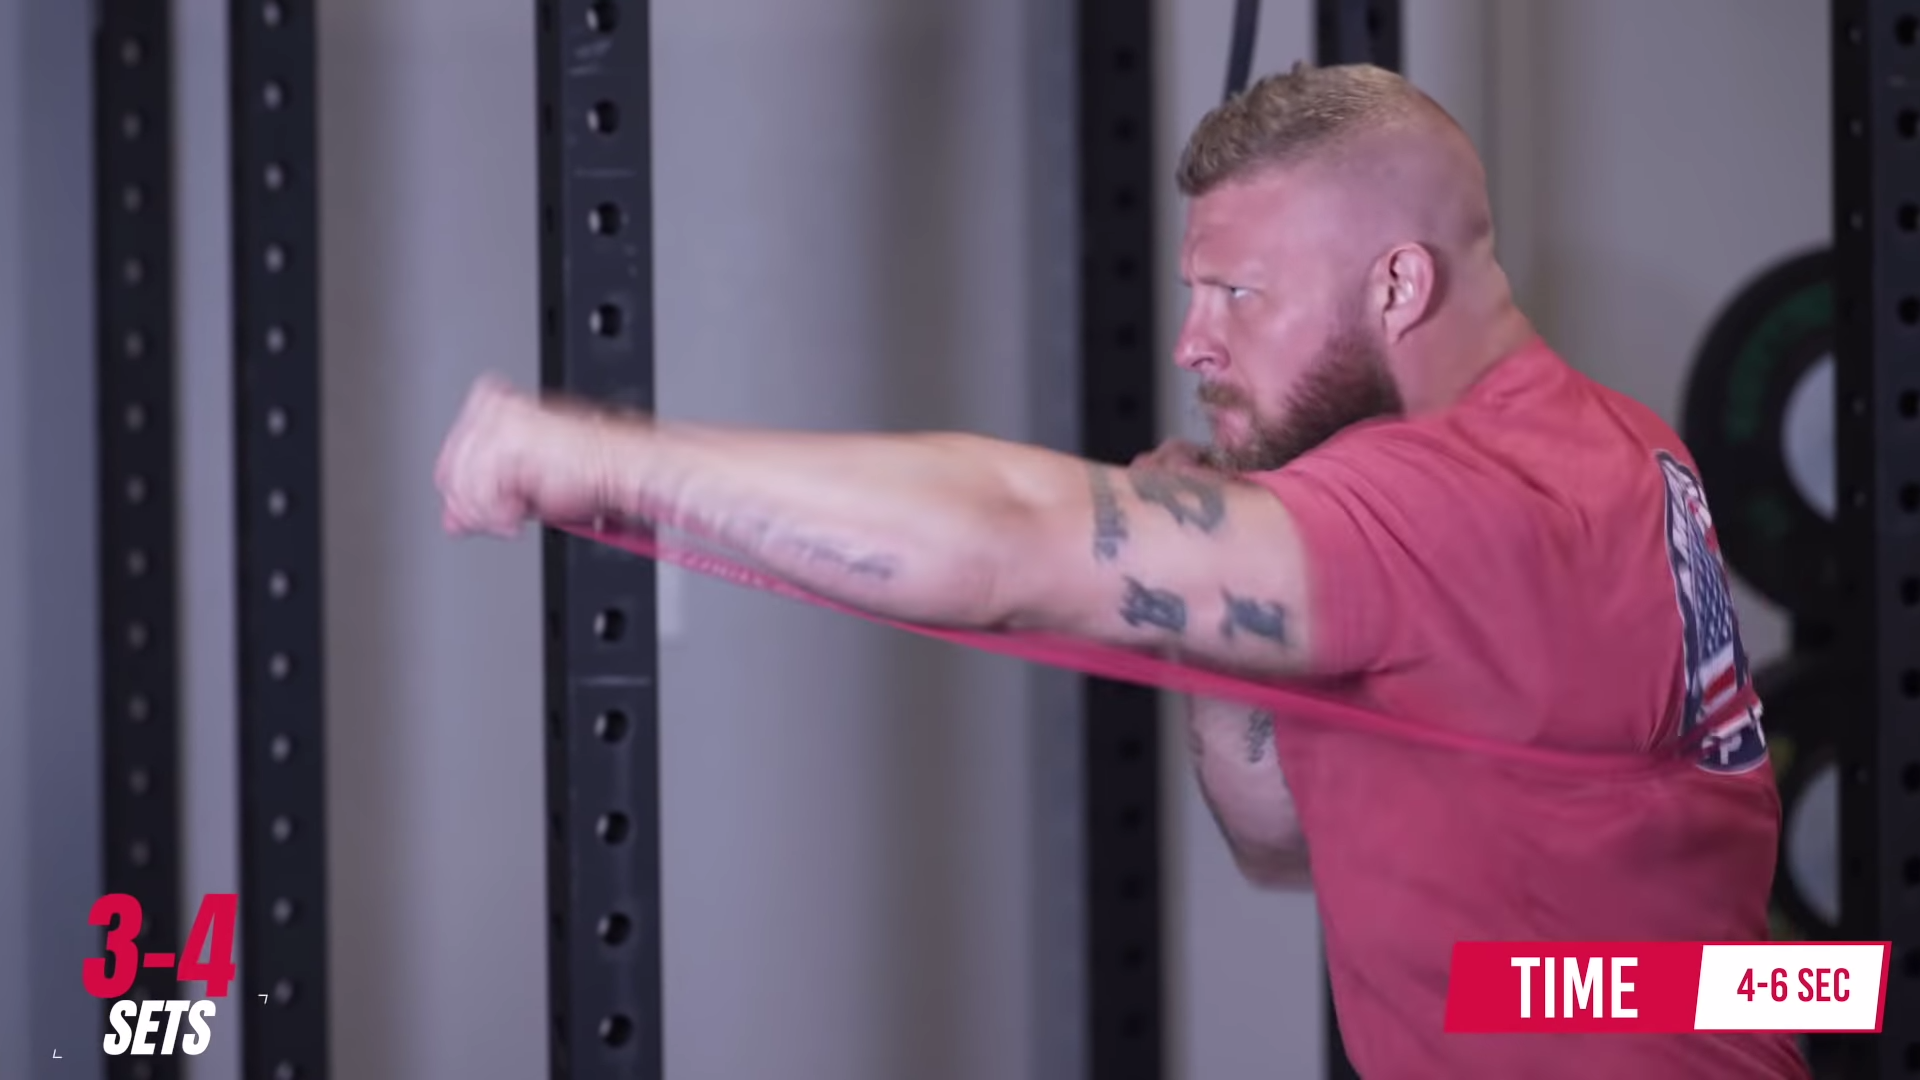 5 Ways to Increase Your Punching Power At Home 7